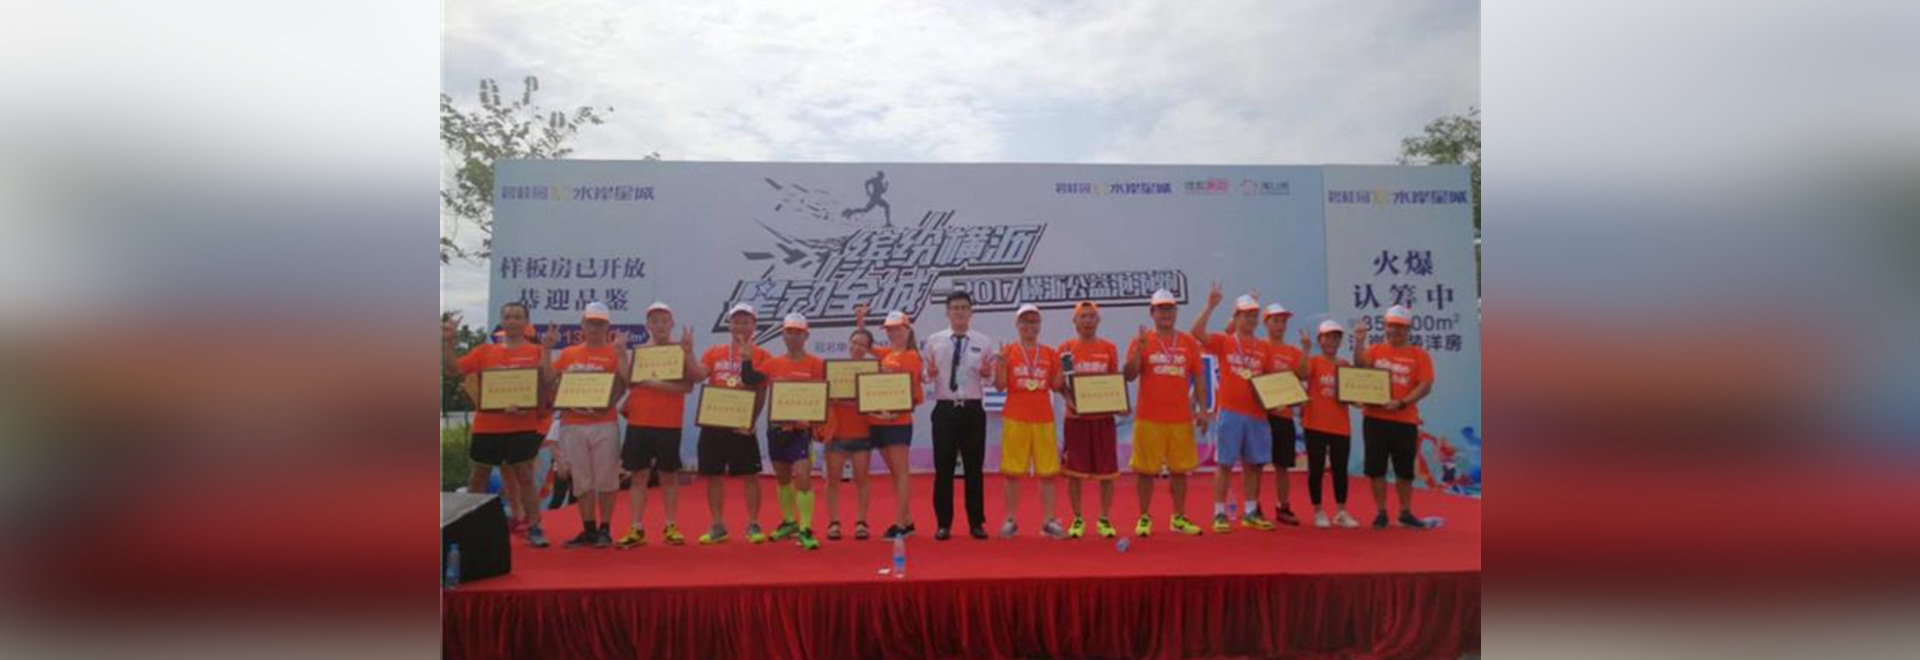 On September 3, 2017, Employees participated in the public running competition